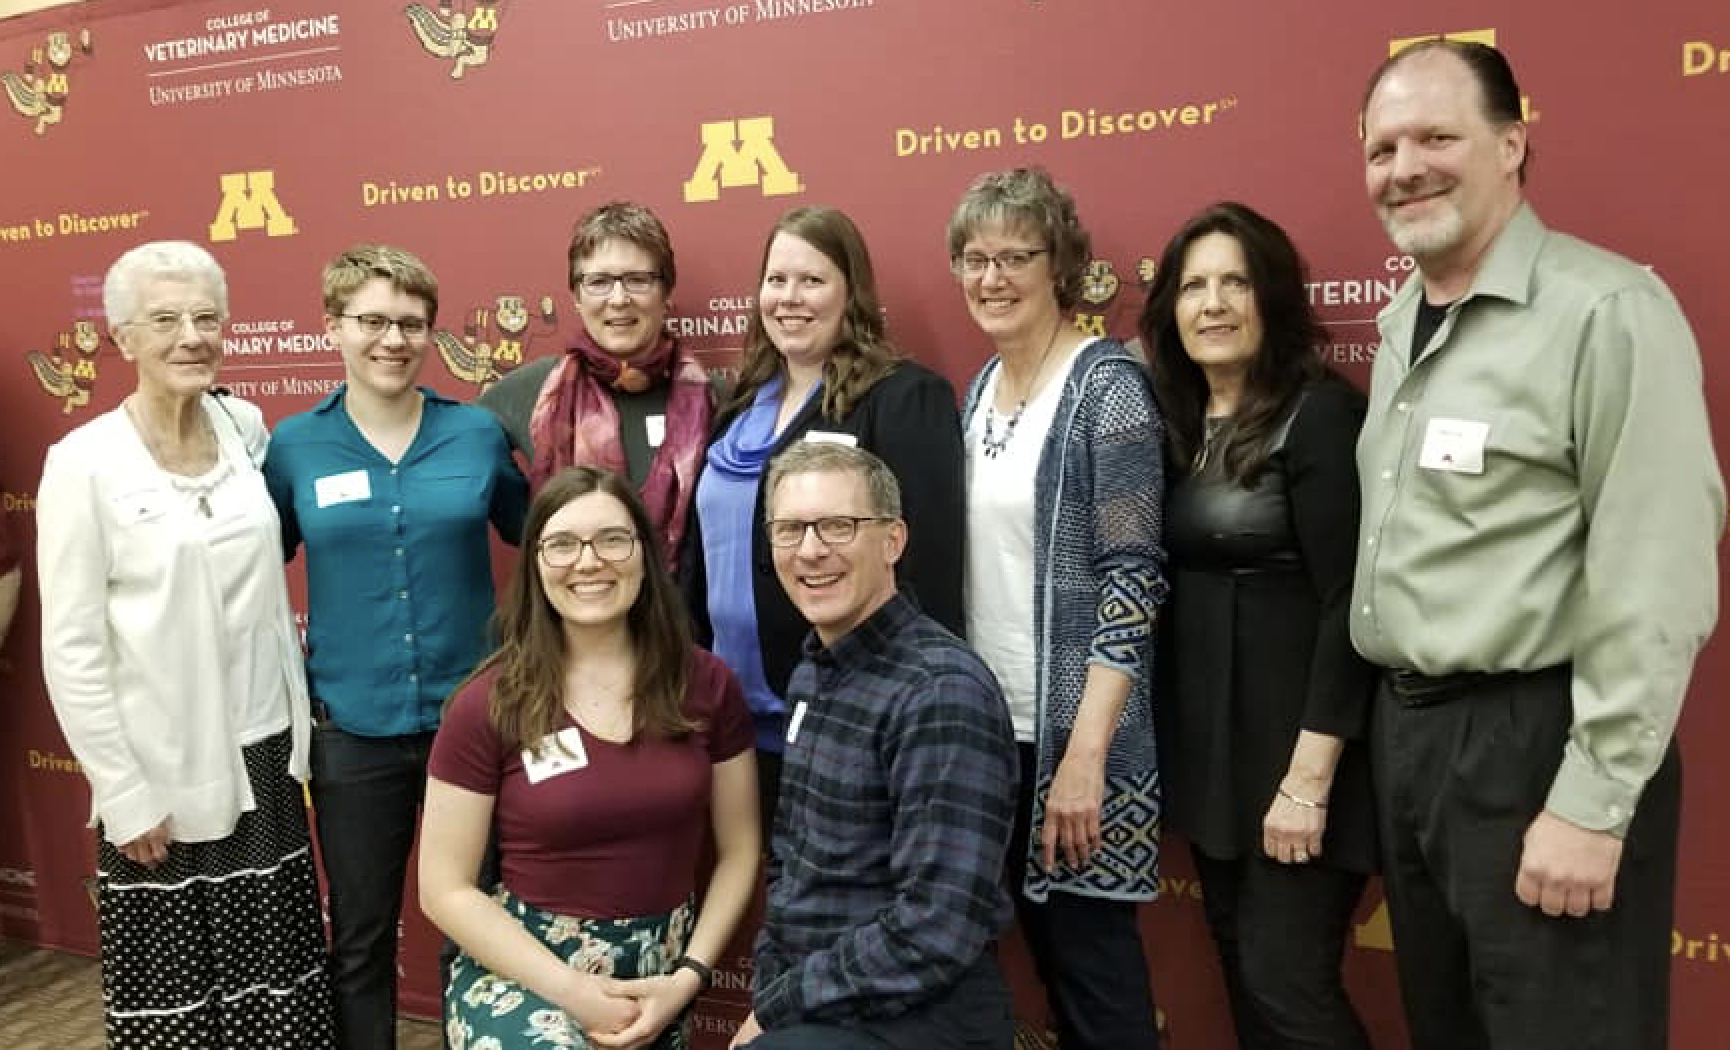 Janet Veit's family, friends, and colleagues post with Janna Erickson for a photo at 2019 Scholarship Reception